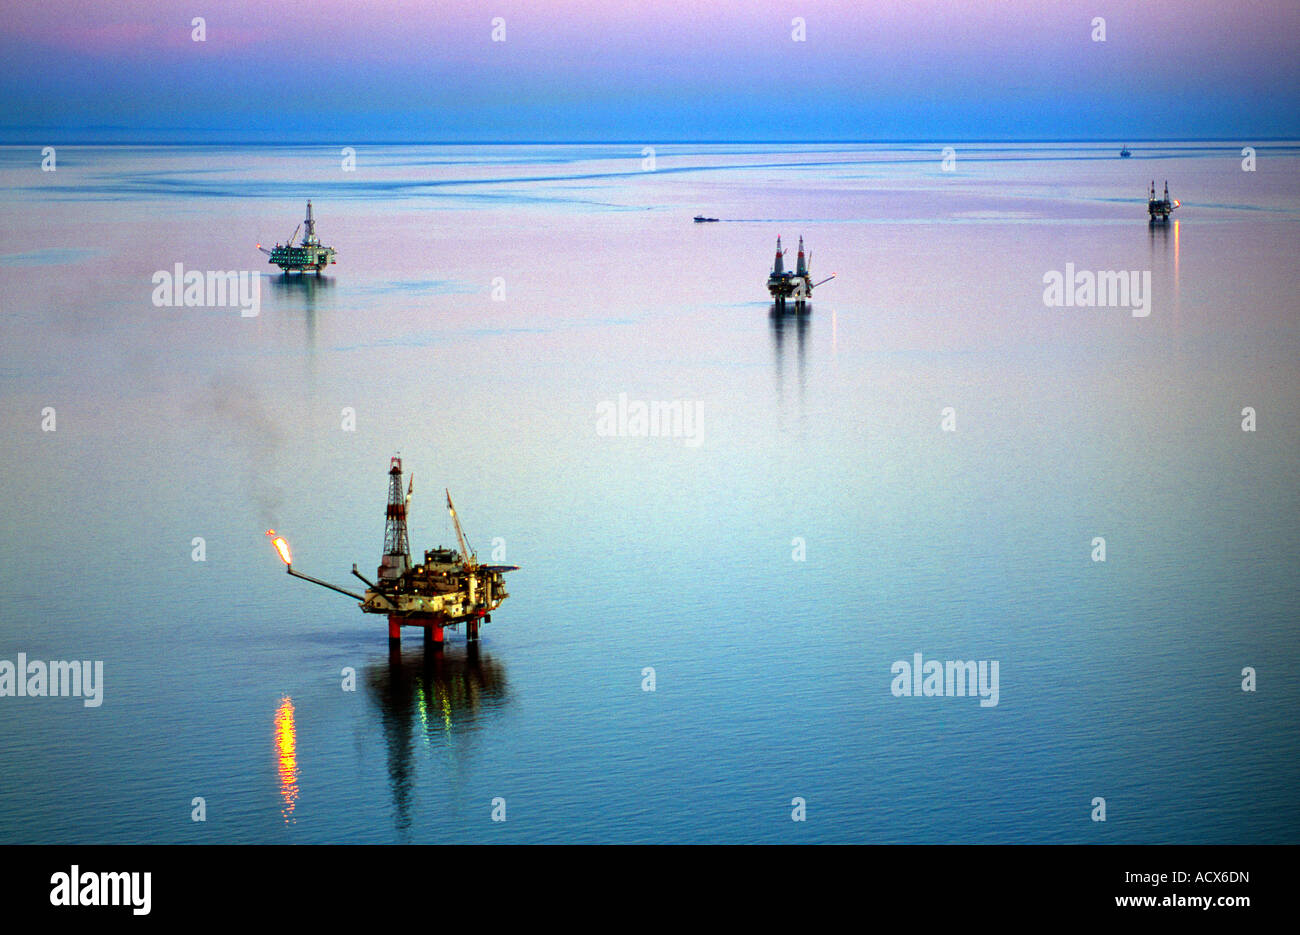 offshore-oil-and-gas-production-in-the-c